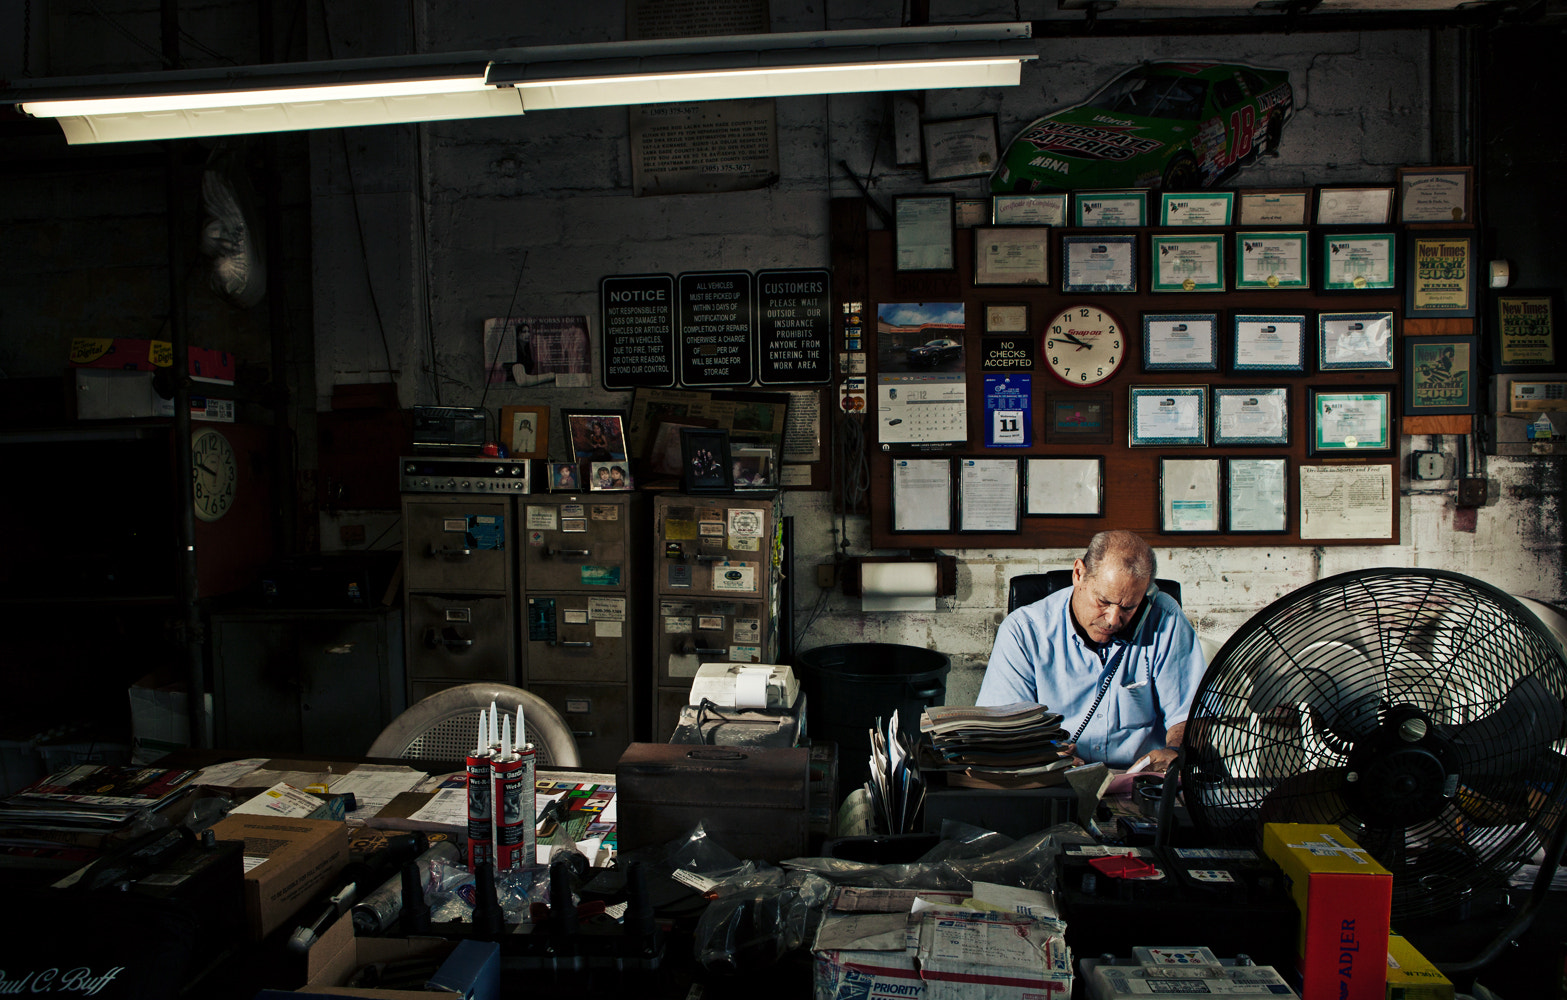 Photograph Nelson at Shorty & Fred's Garage by Mary Beth Koeth on 500px